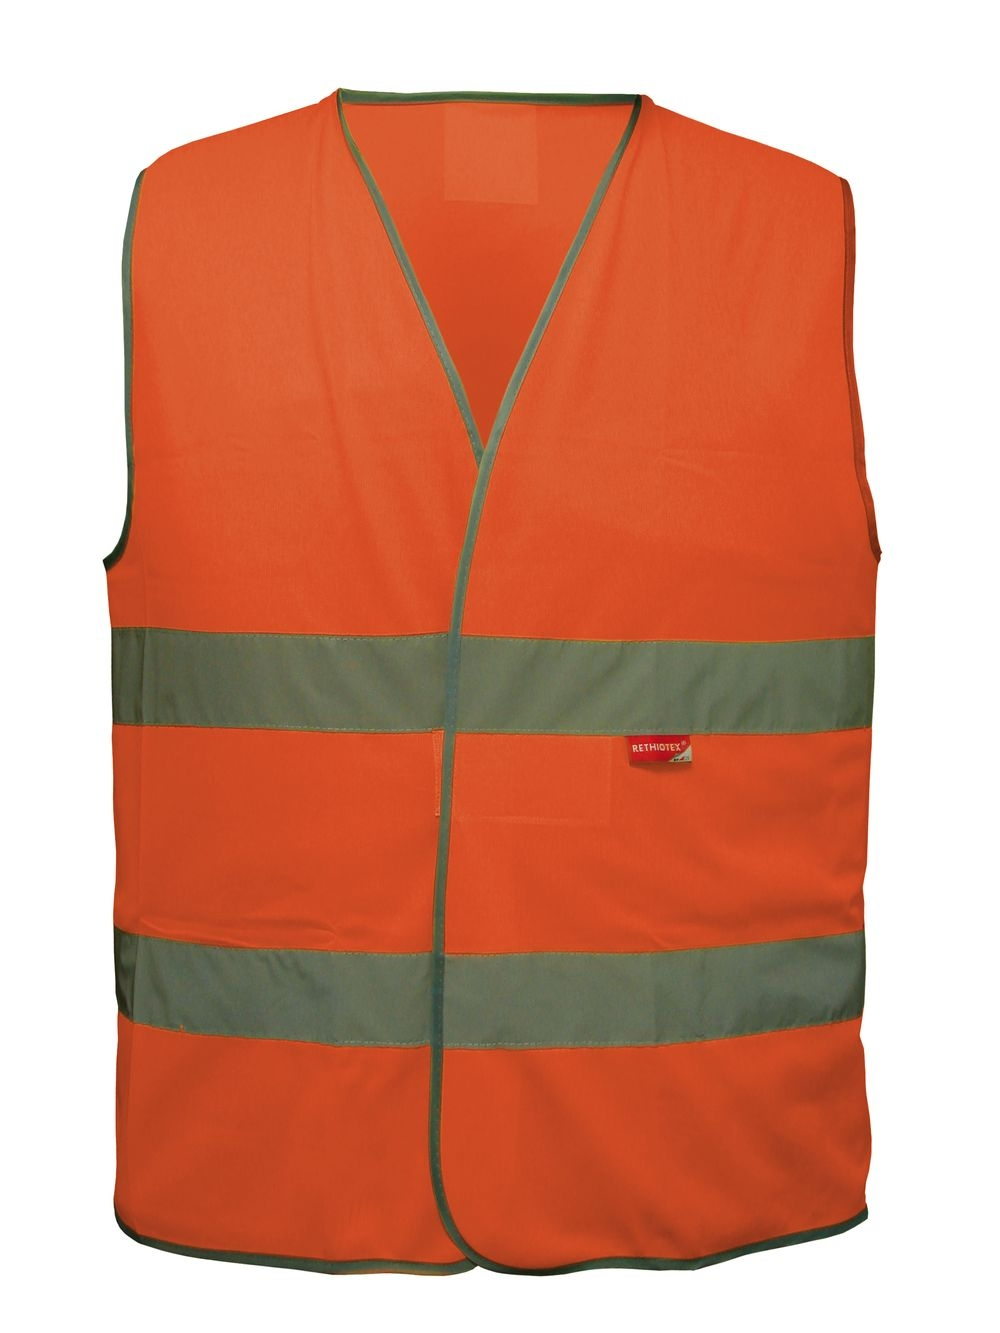 Gilet sécurité Adulte L2S Visio 543 Orange fluorescent - M